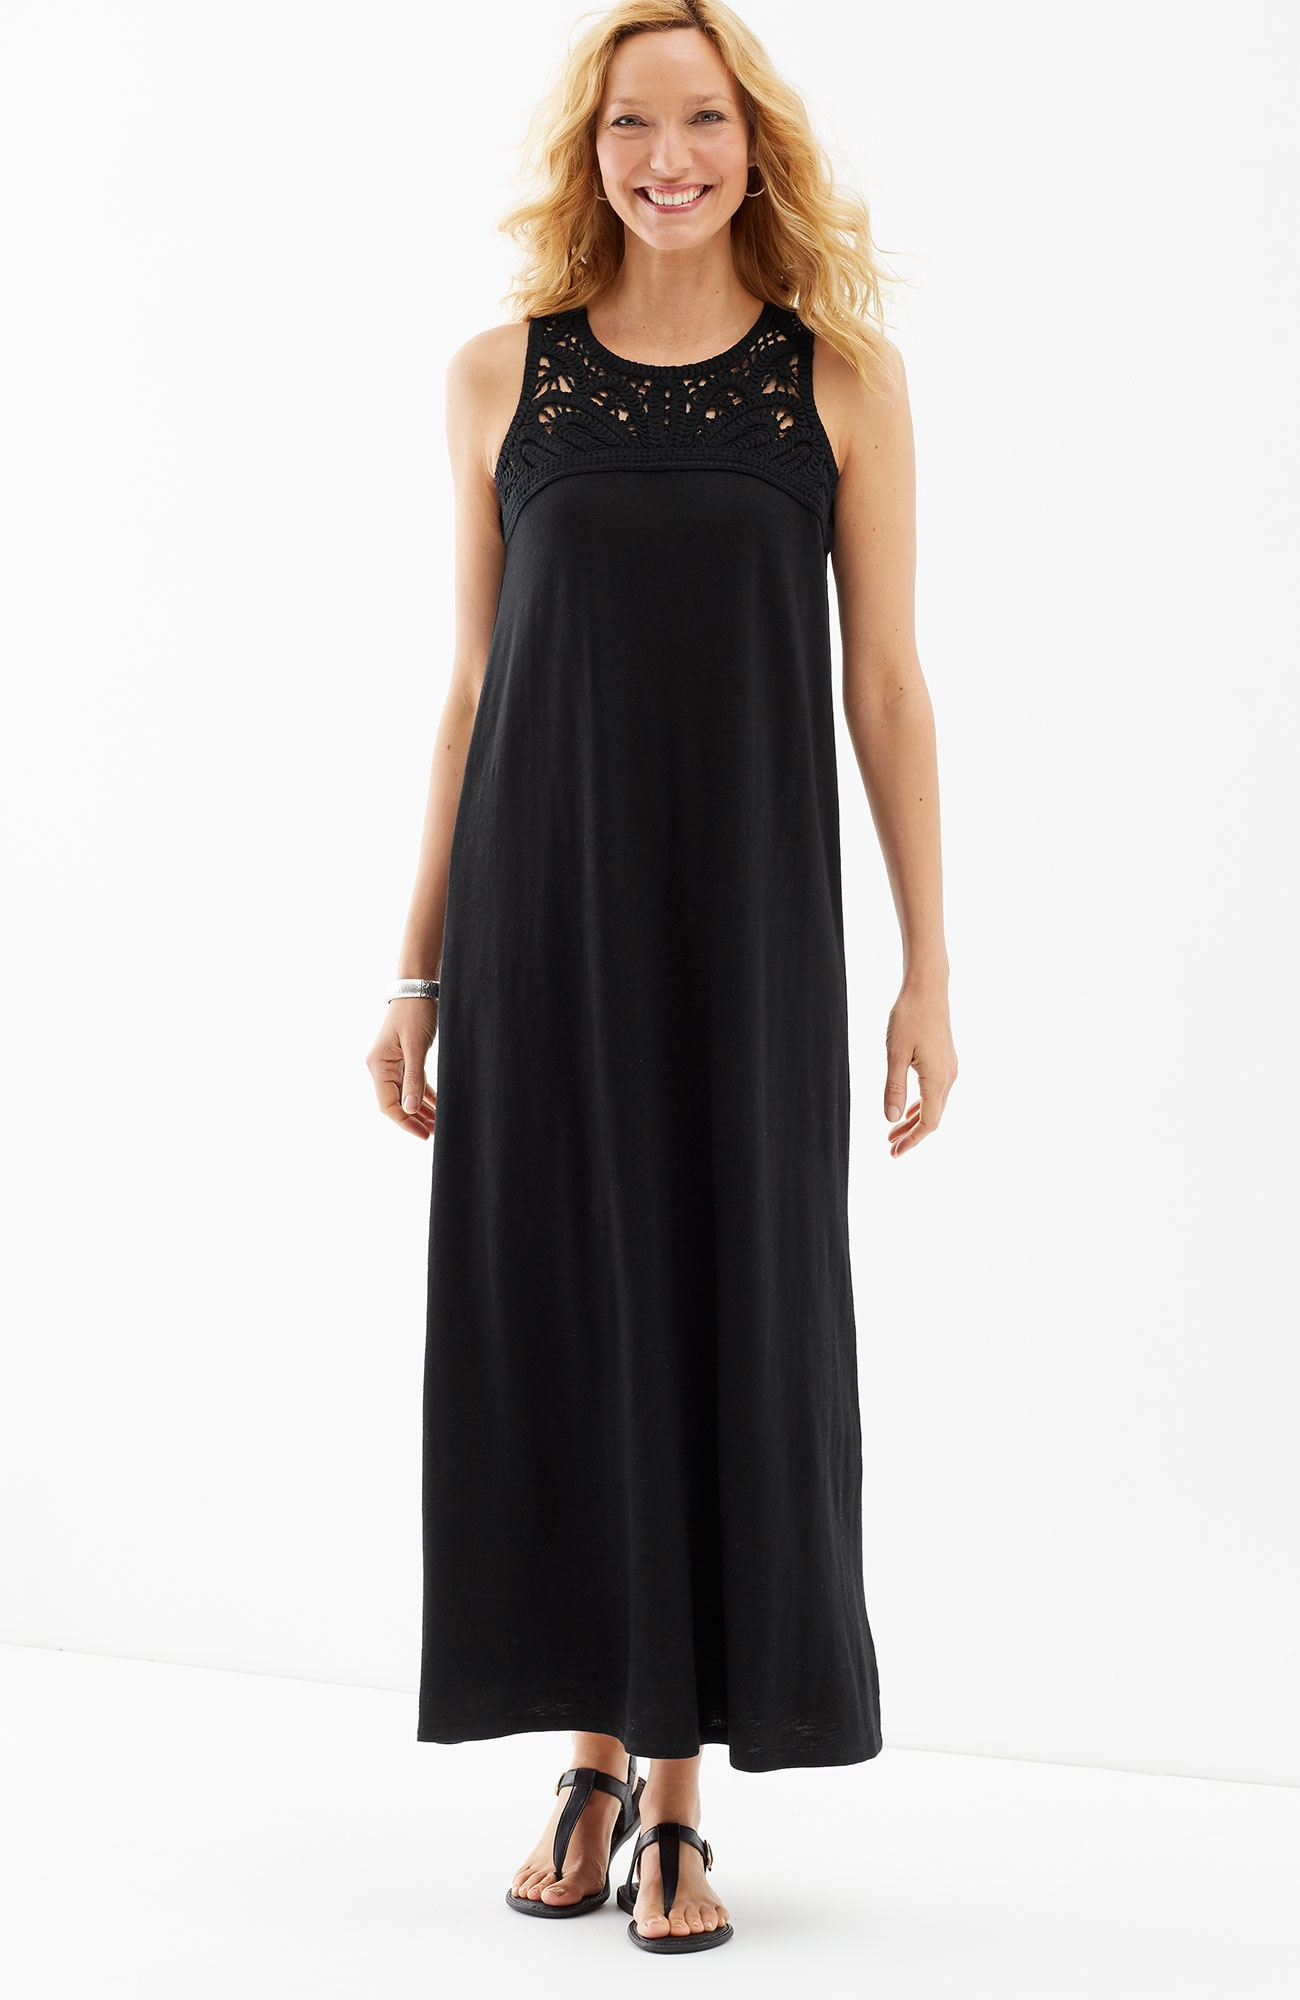 macramé-trim knit maxi dress